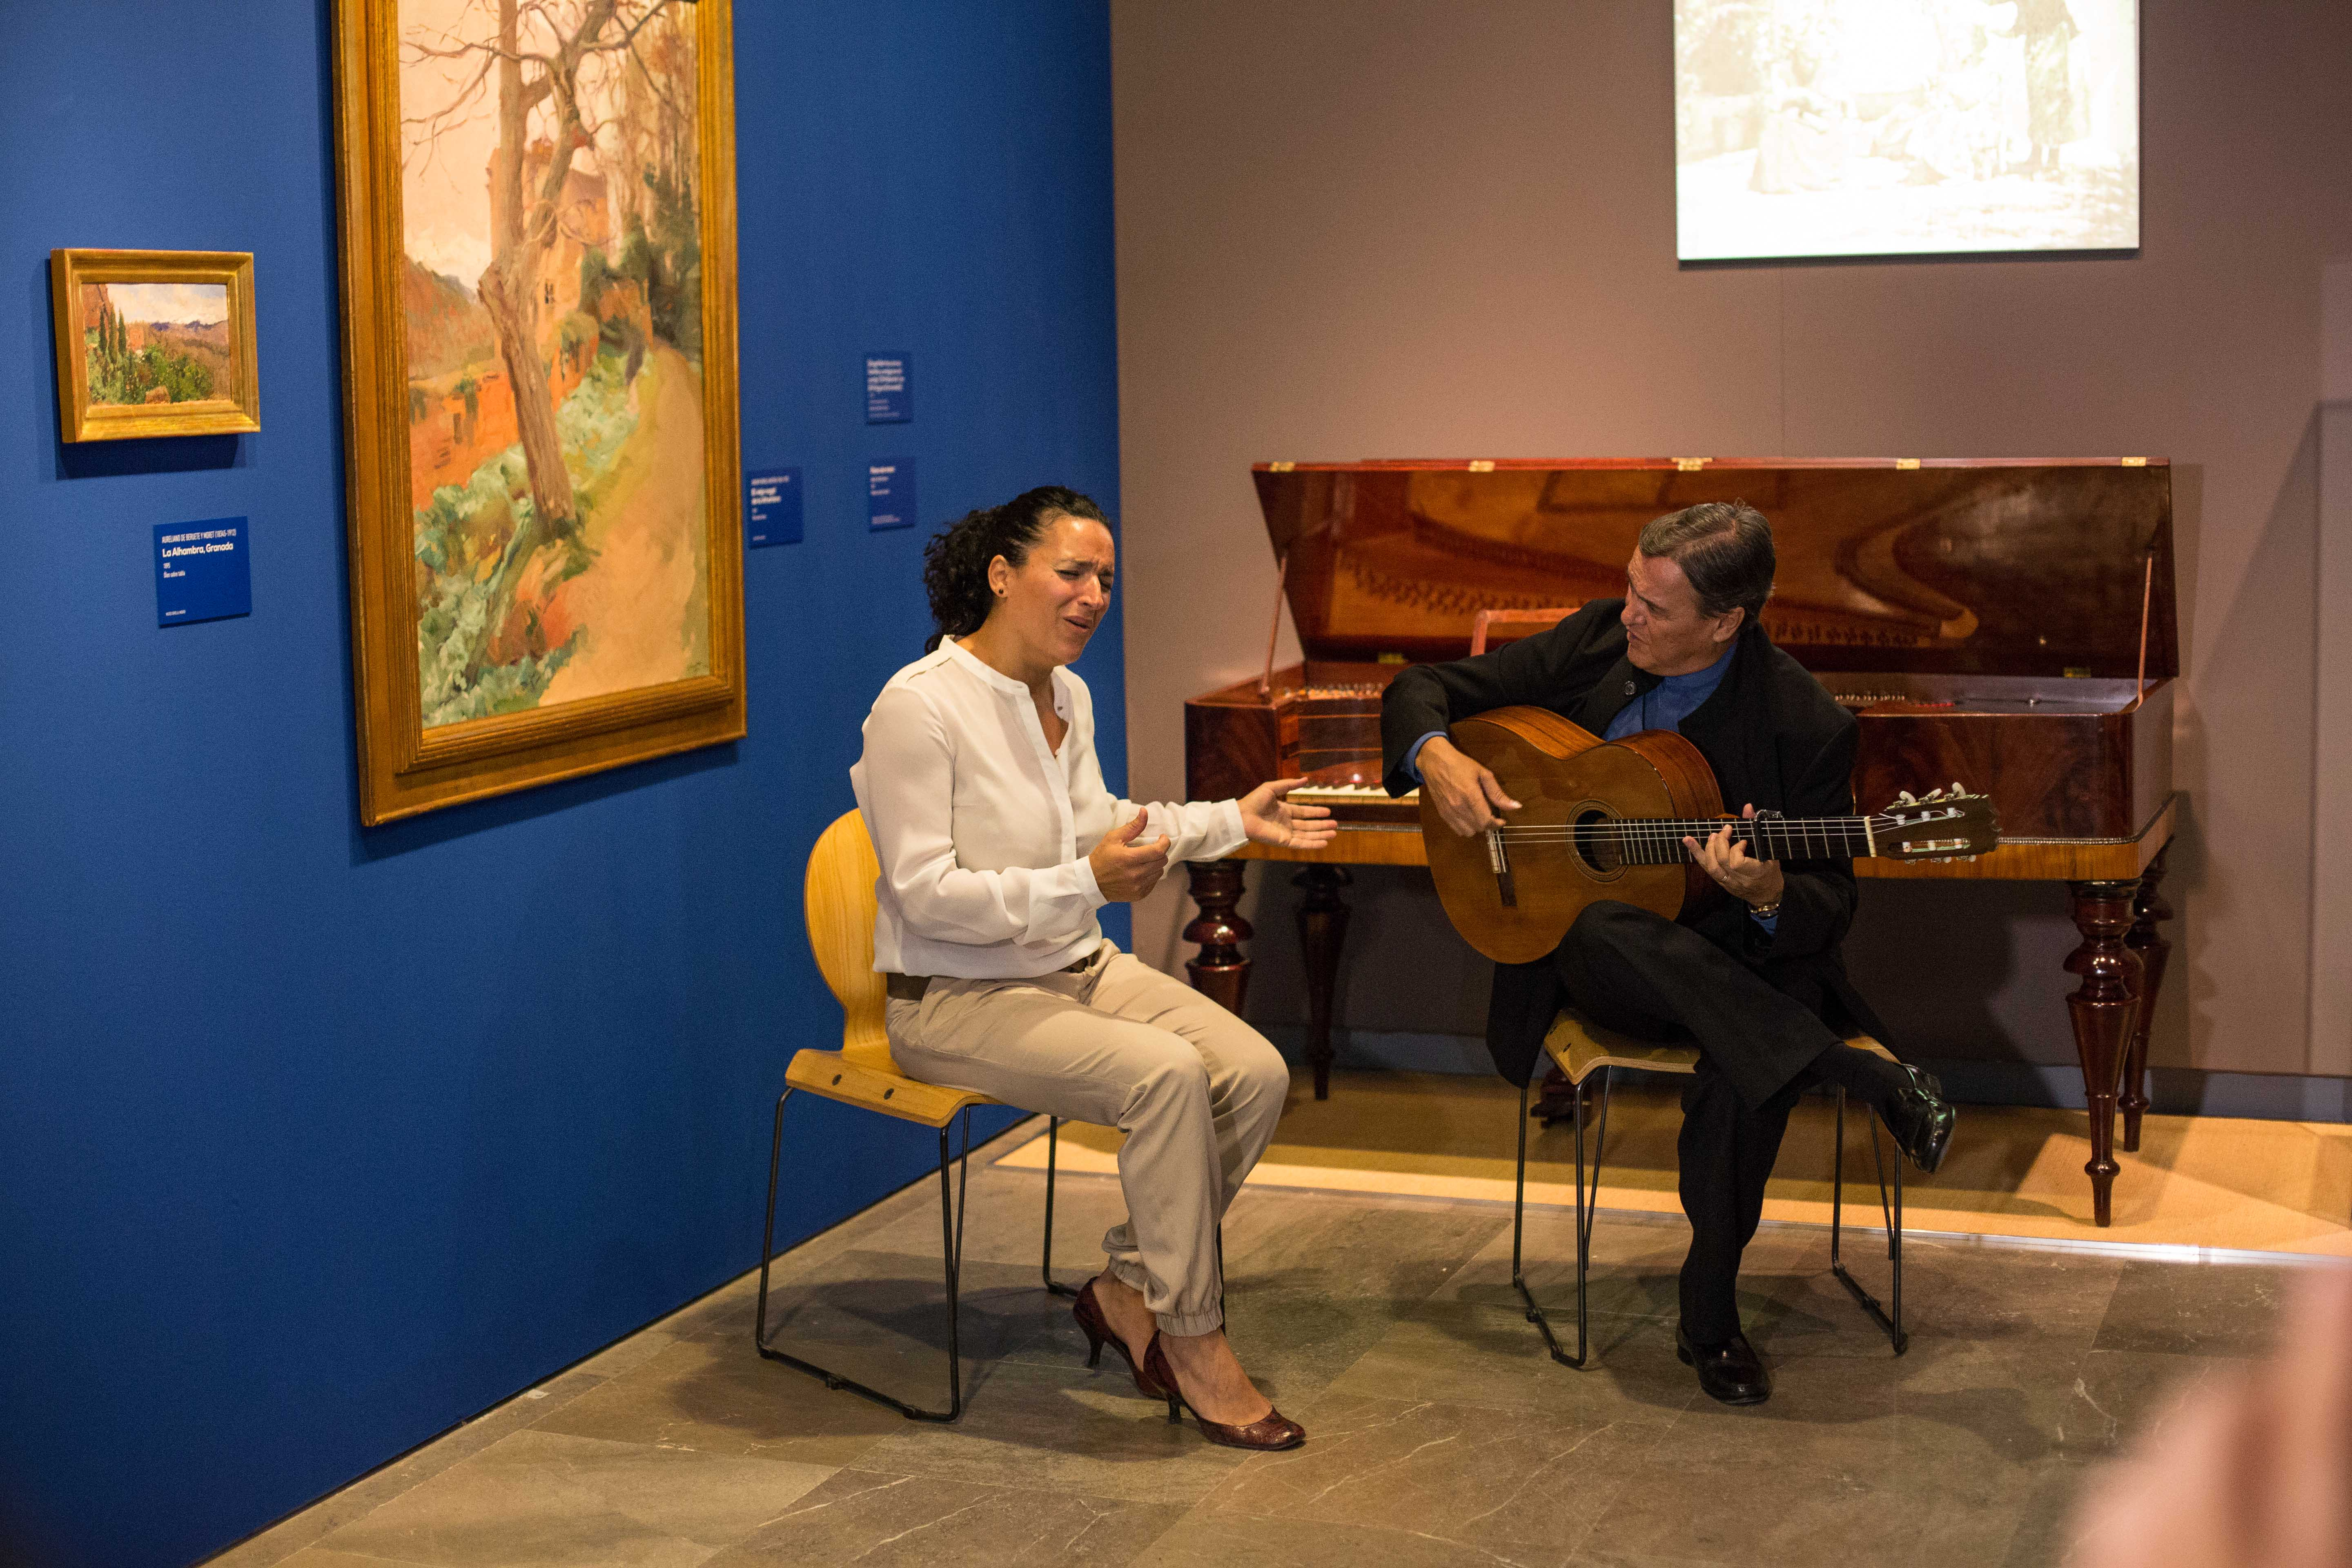 The Alhambra organizes guided visits to the Ángel Barrios exhibition with live music at weekends